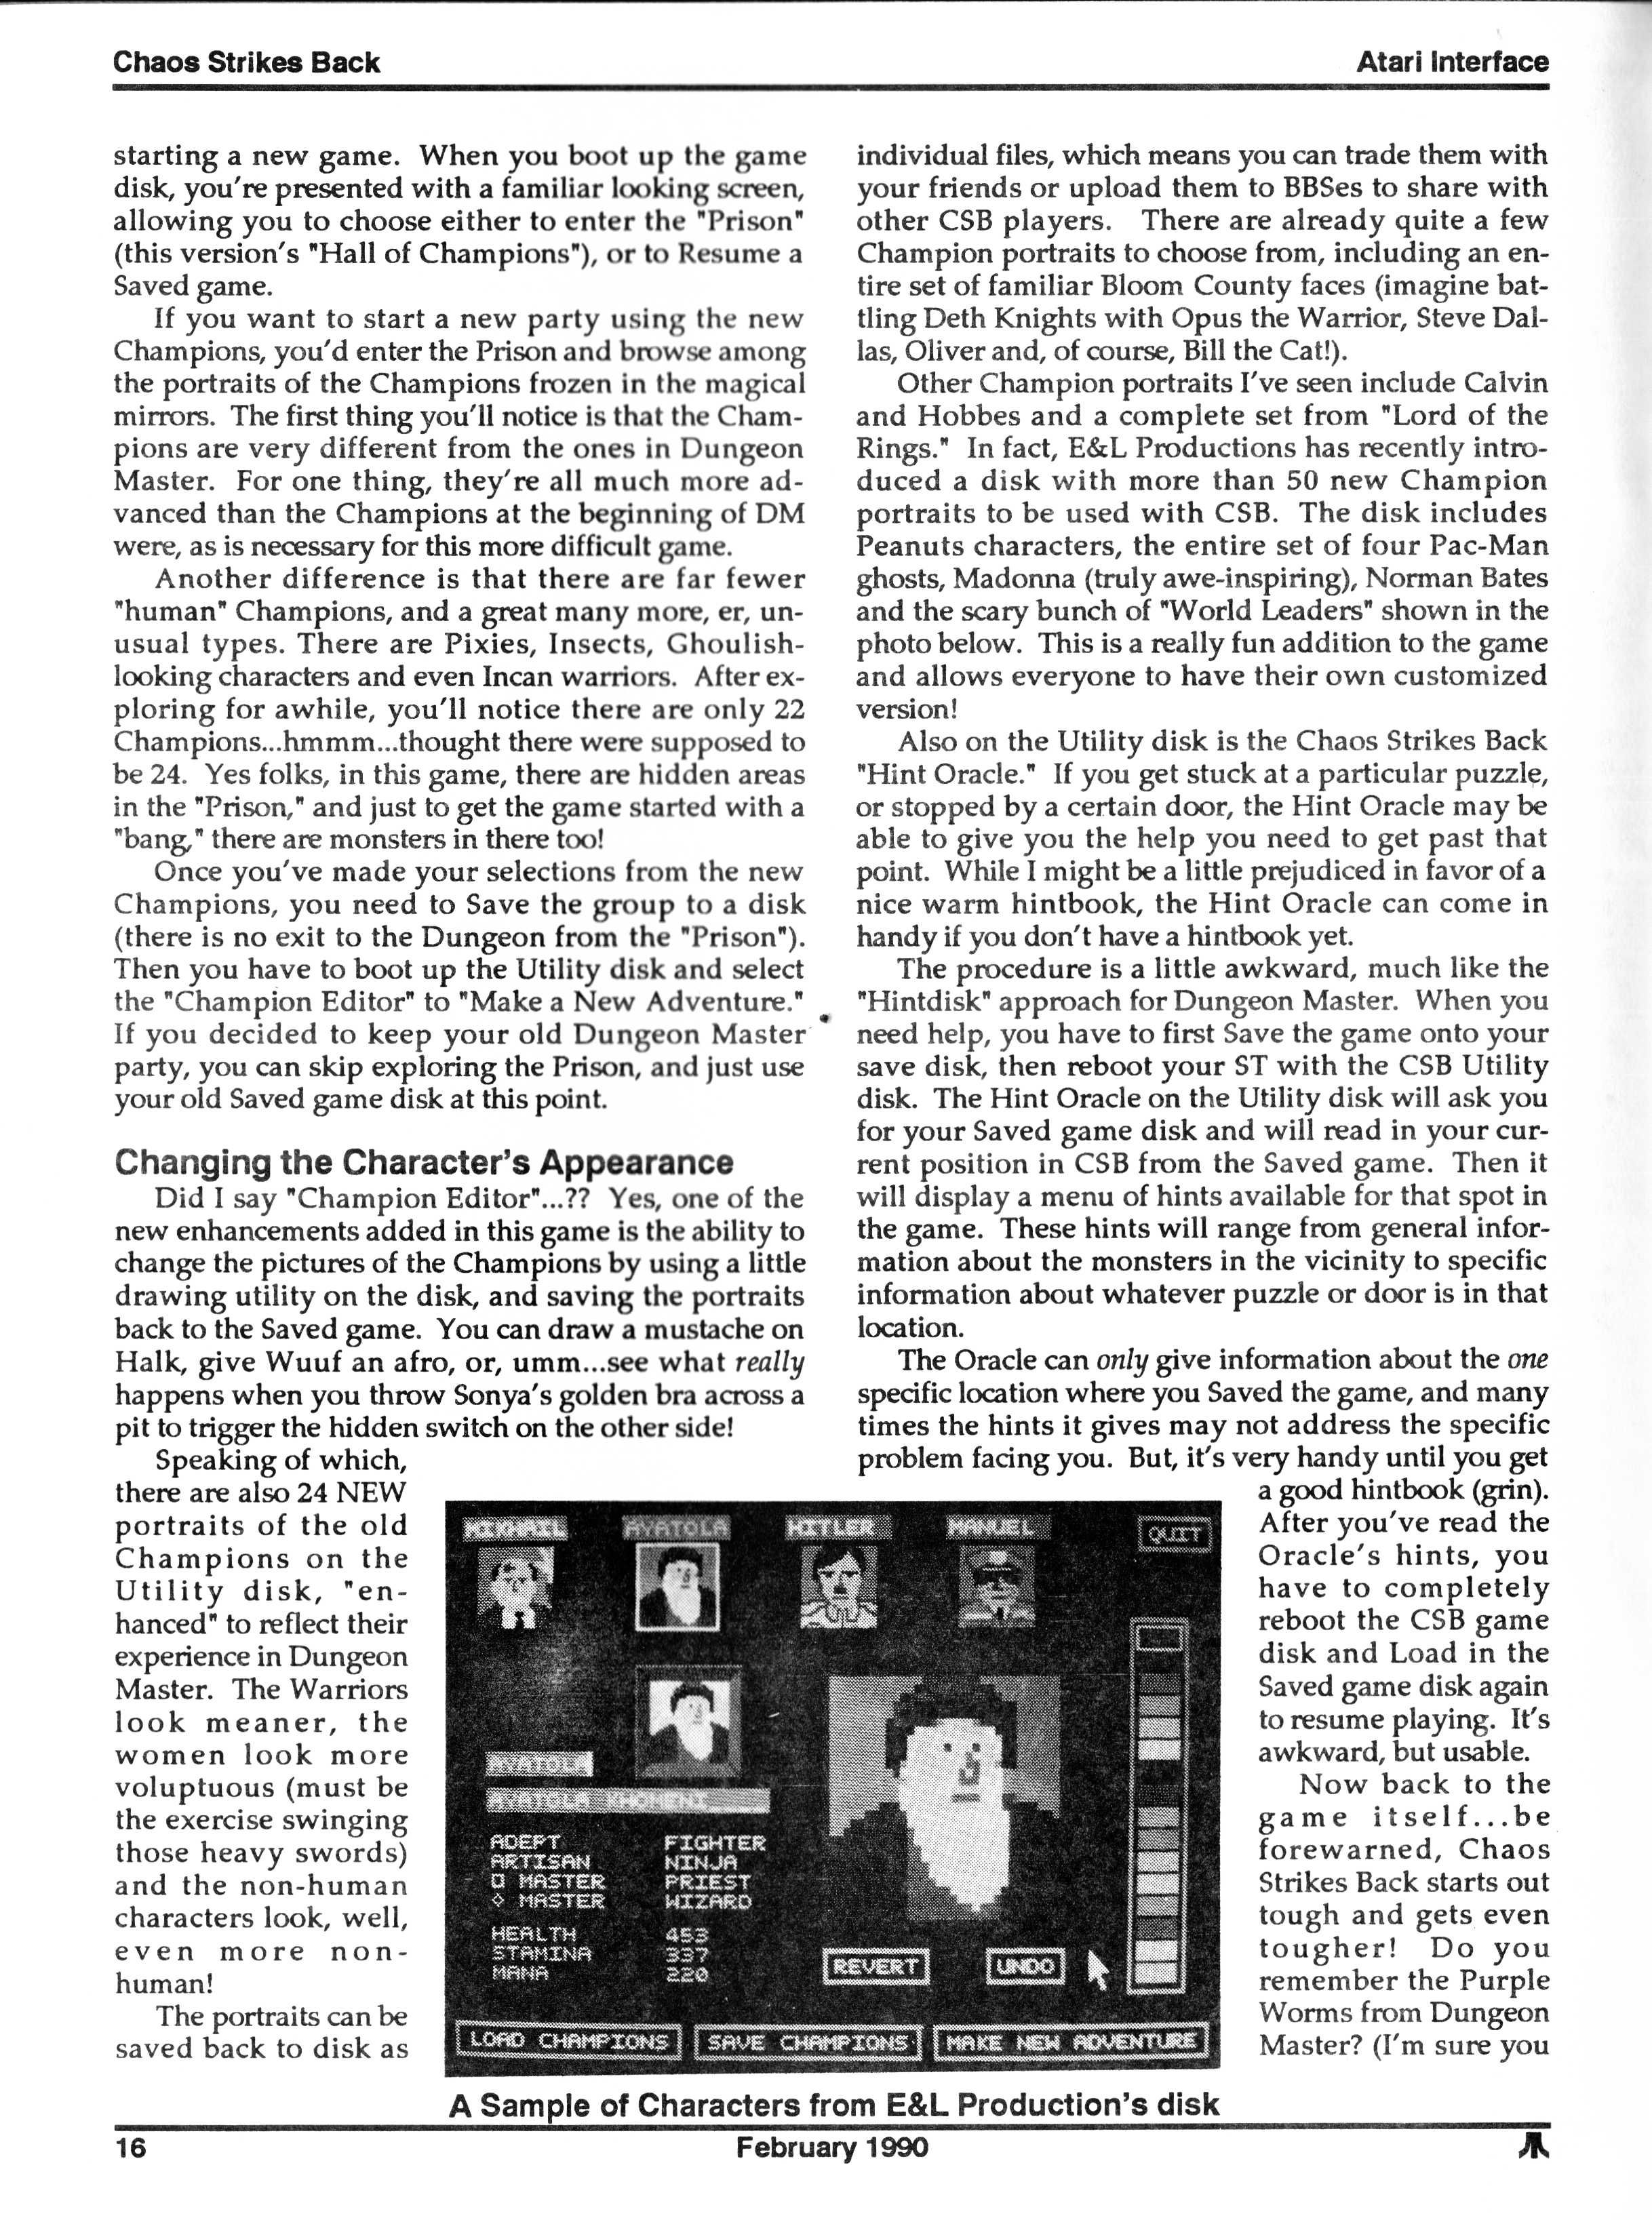 Chaos Strikes Back for Atari ST Review published in American magazine 'Atari Interface Magazine', Vol 2 No 2 February 1990, Page 16